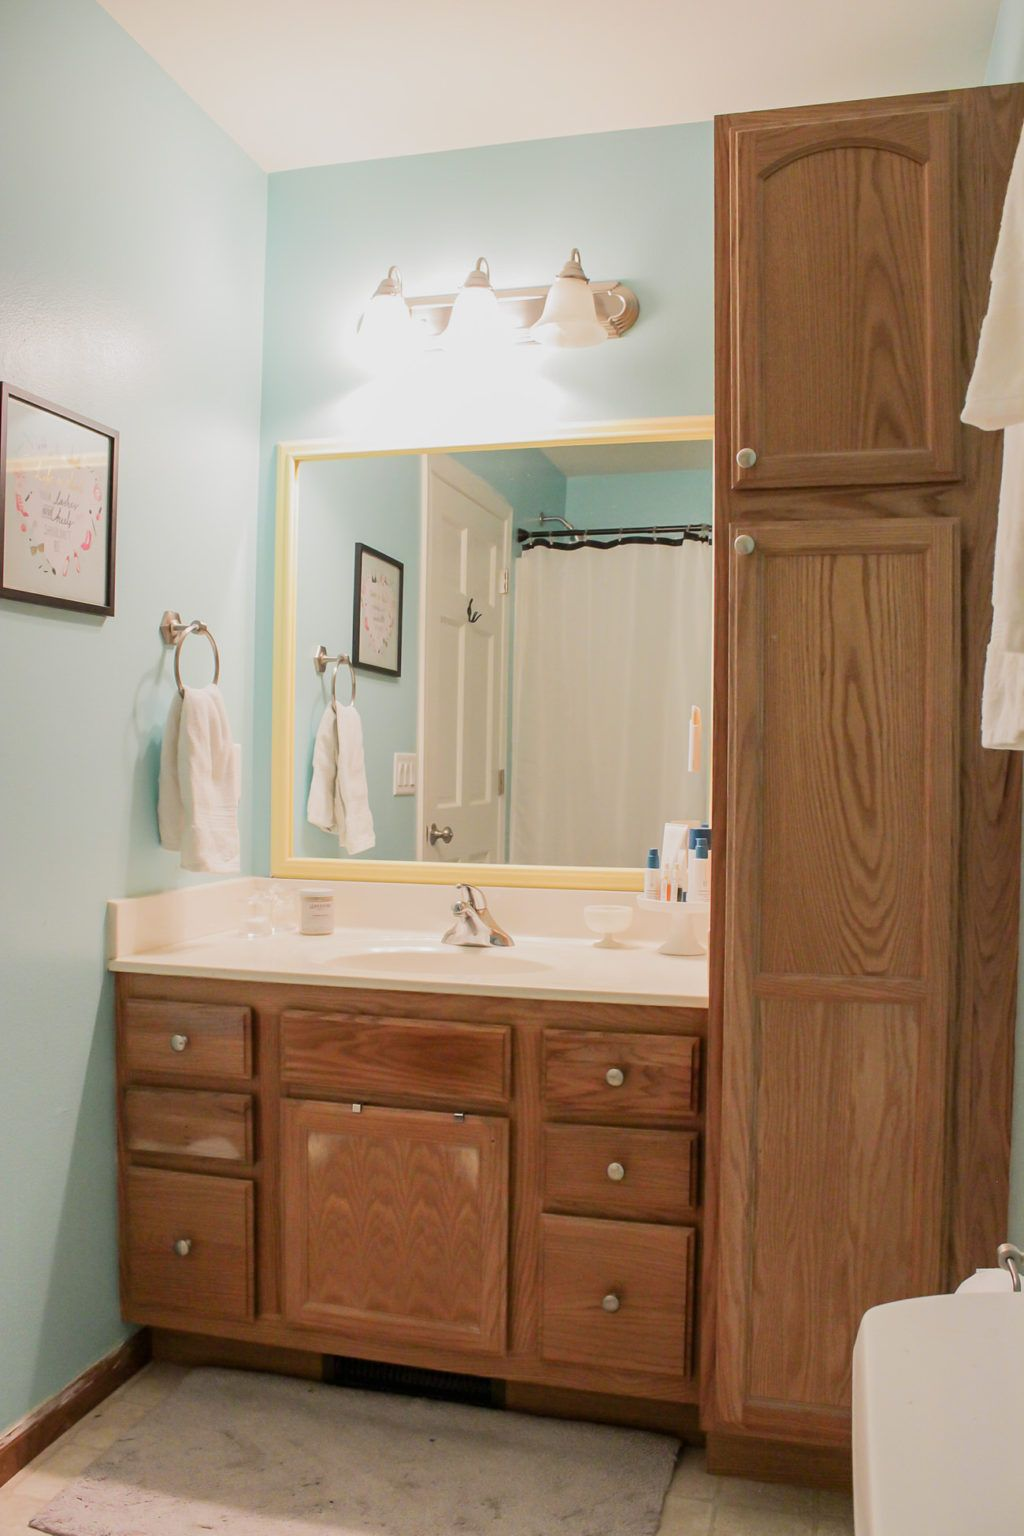 Our Bathroom Makeover Before And After Saffron Avenue Bathroom Makeover Small Bathroom Makeover Bathroom Makeovers On A Budget